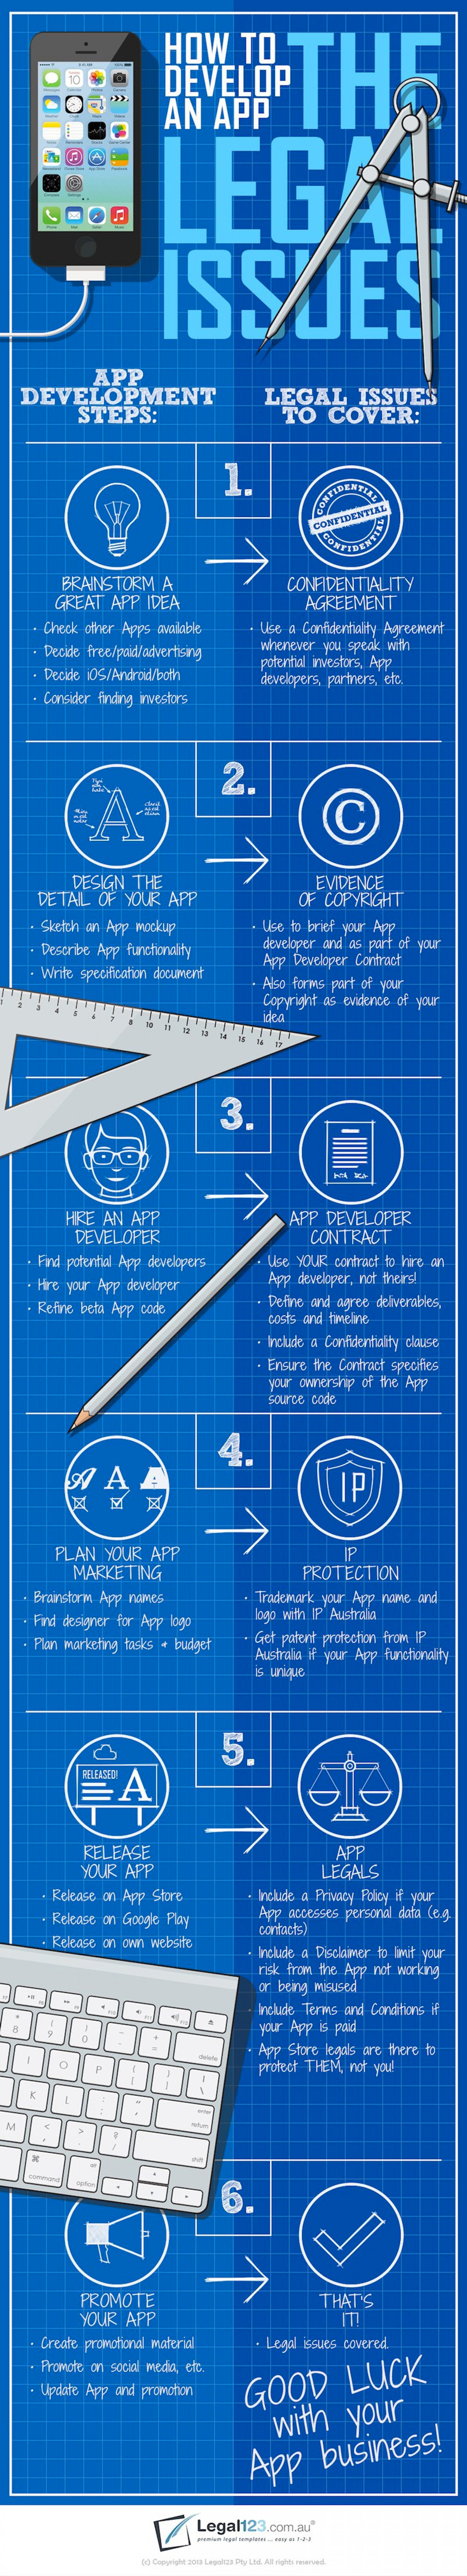 developing-an-app-the-legal-issues-infographic